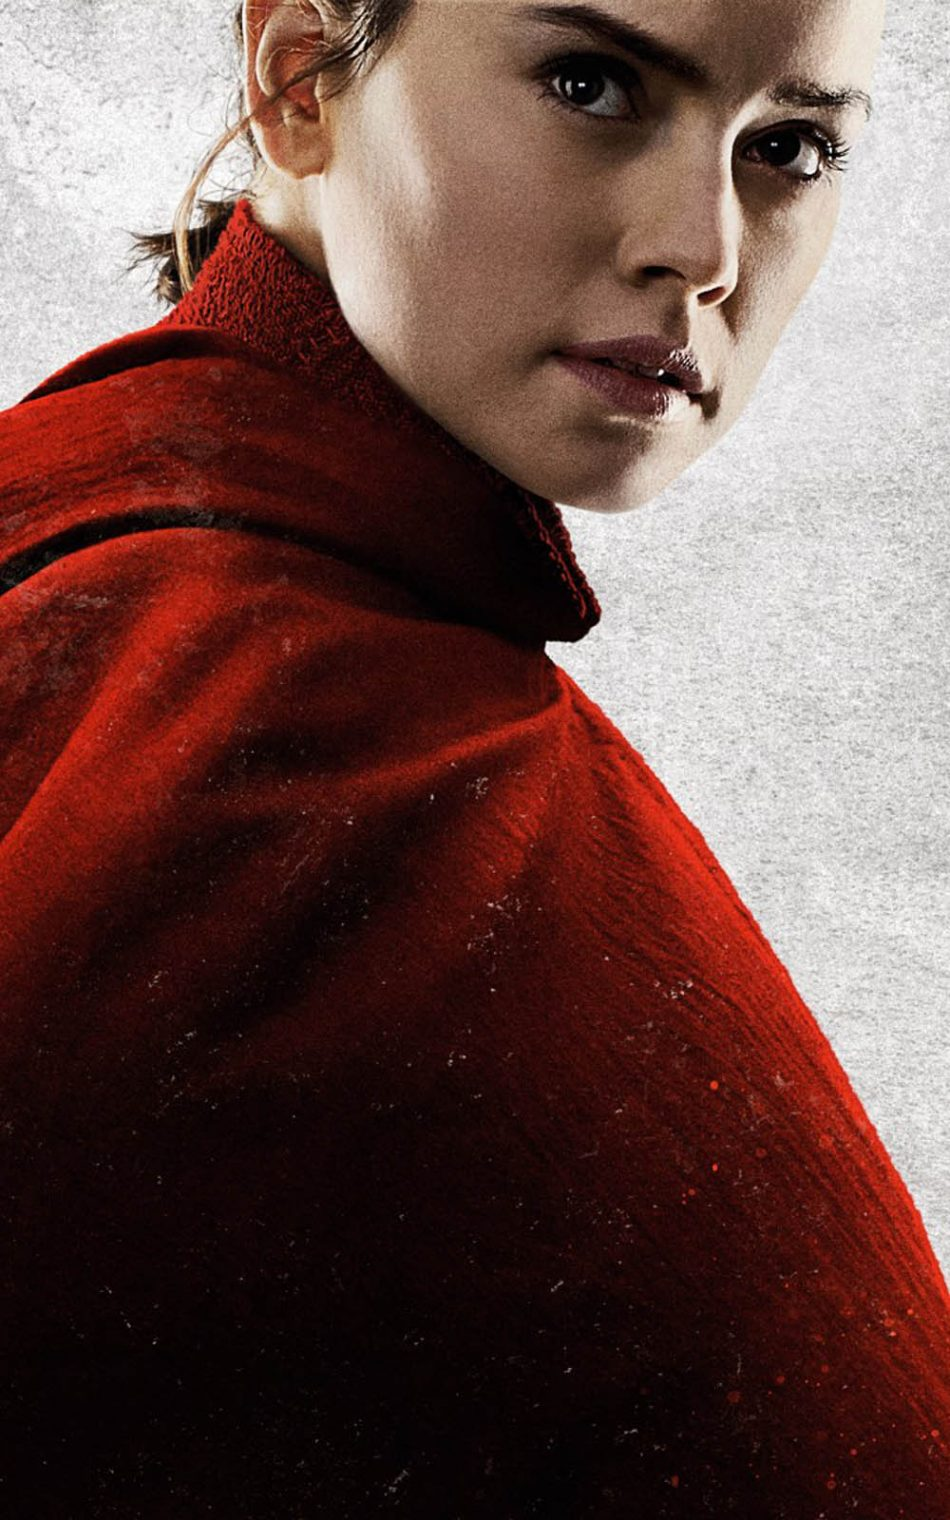 Rey In Star Wars The Last Jedi HD Mobile Wallpaper